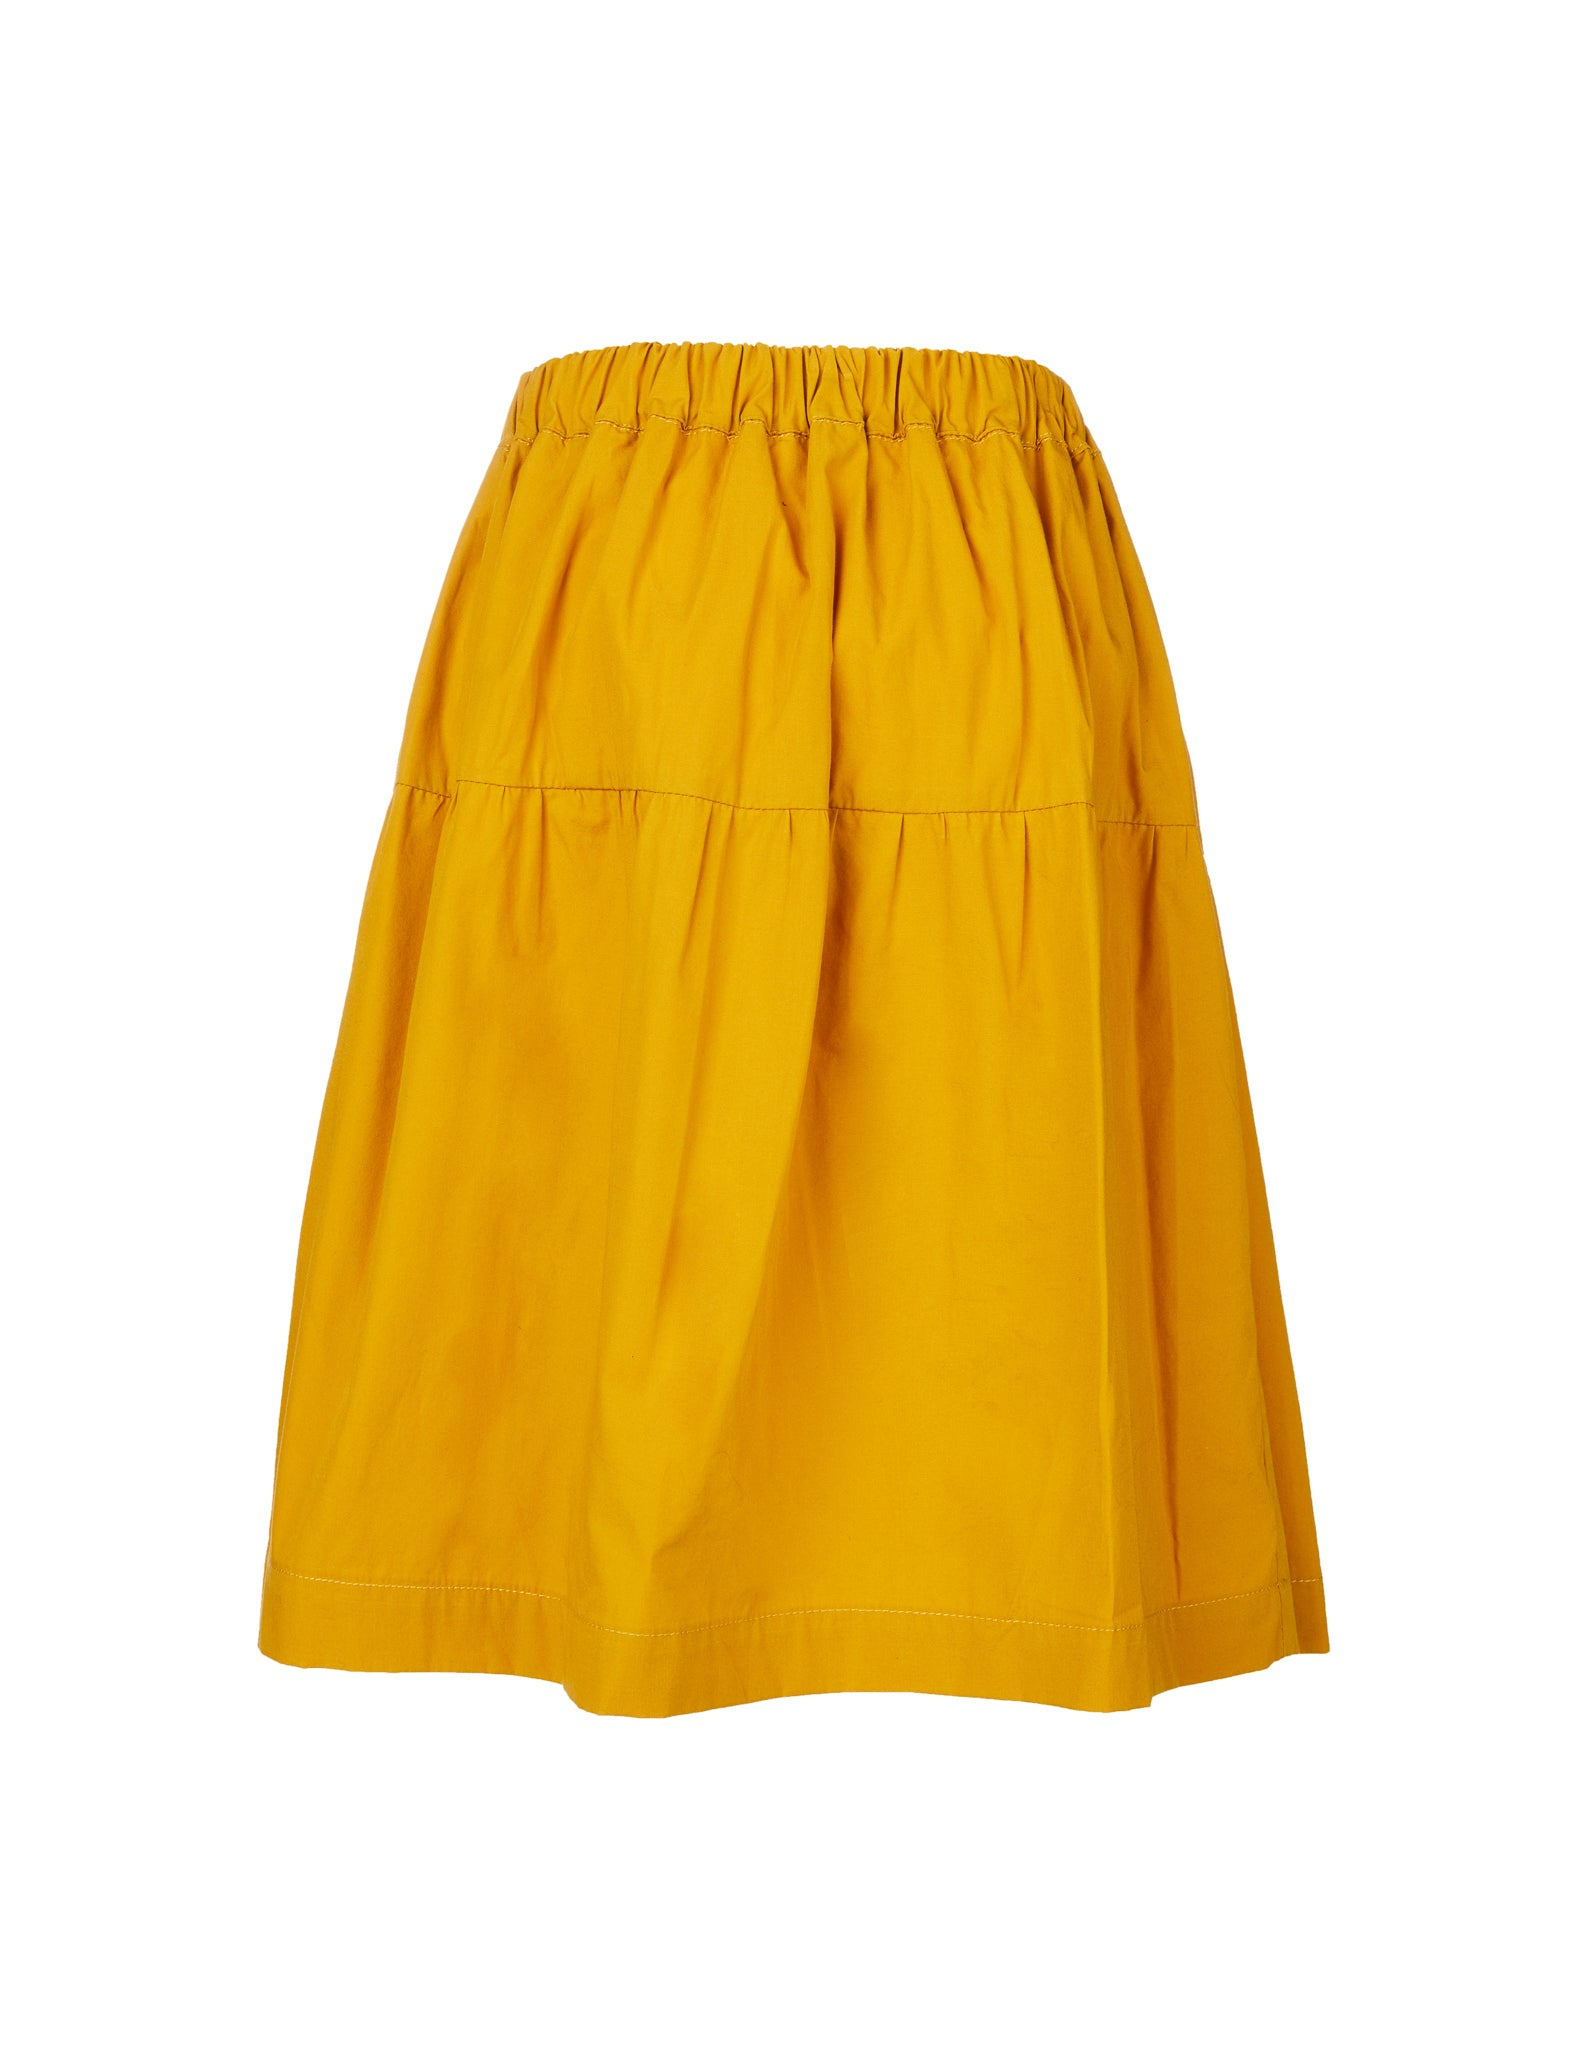 WAISTBAND SKIRT IN OCHRE